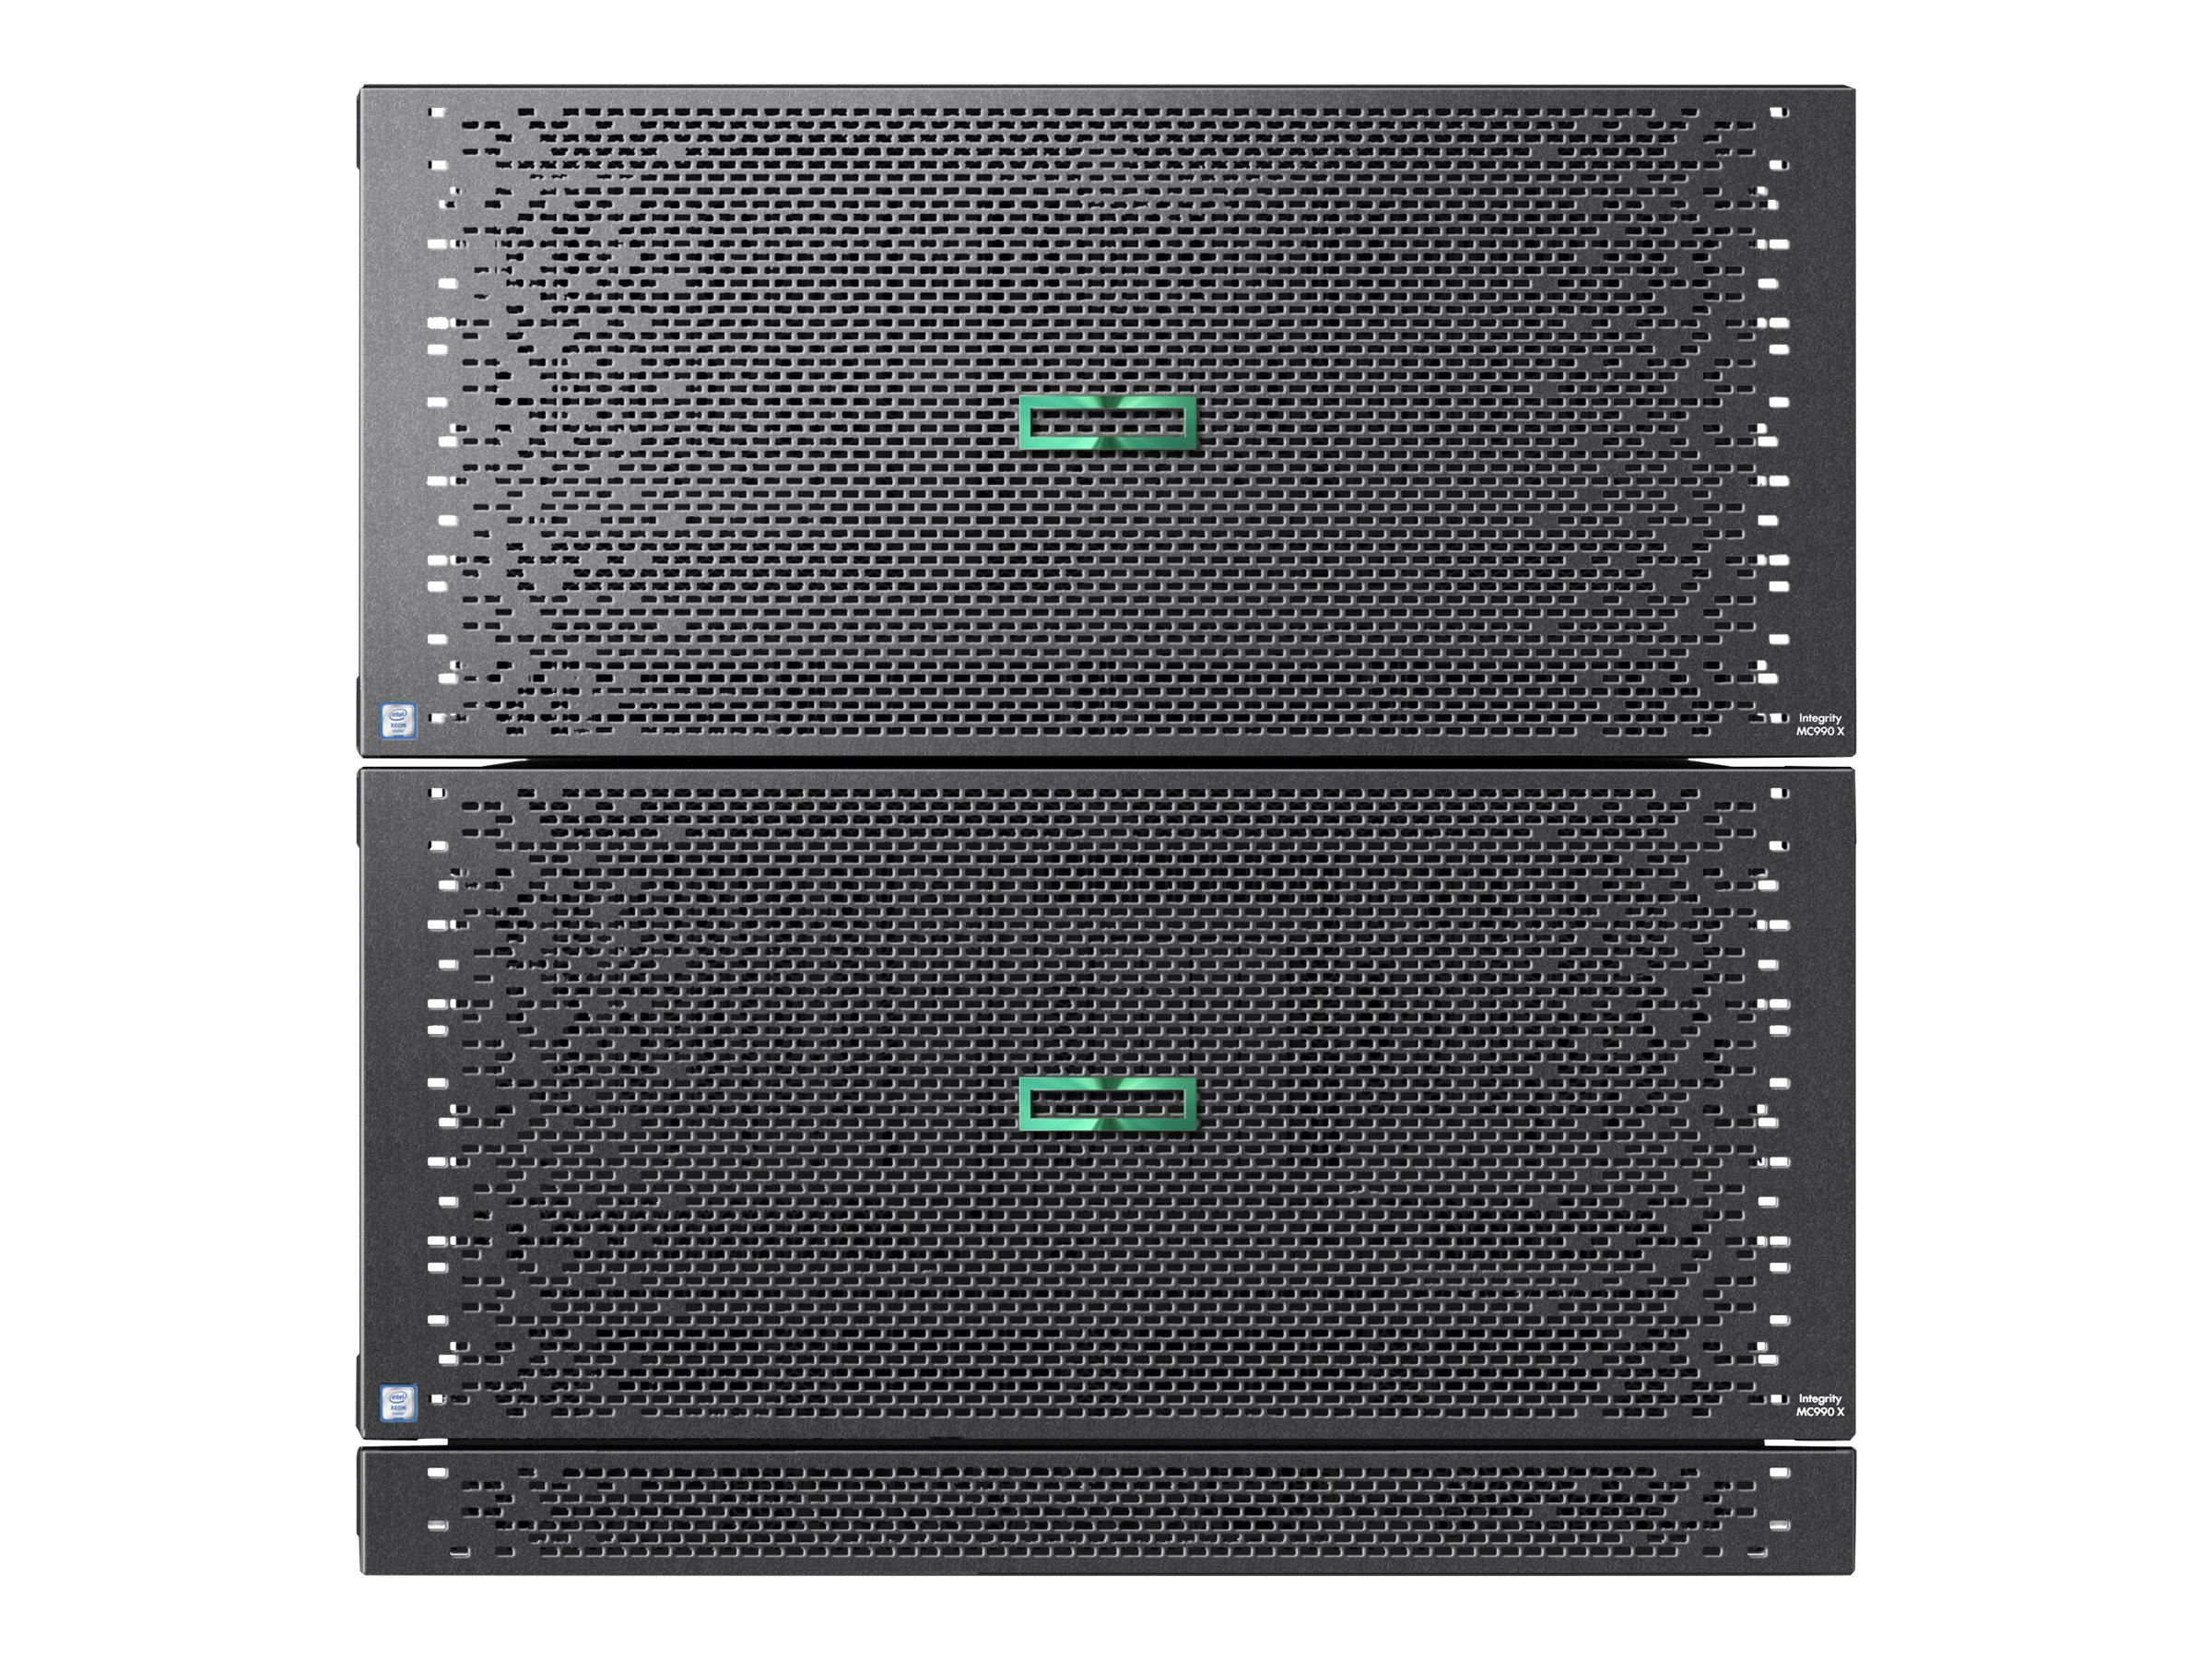 HPE Integrity MC990 X Base - rack-mountable - Xeon E7-8891V4 2.8 GHz - 0 GB - with HPE 1U Rack Management Controller